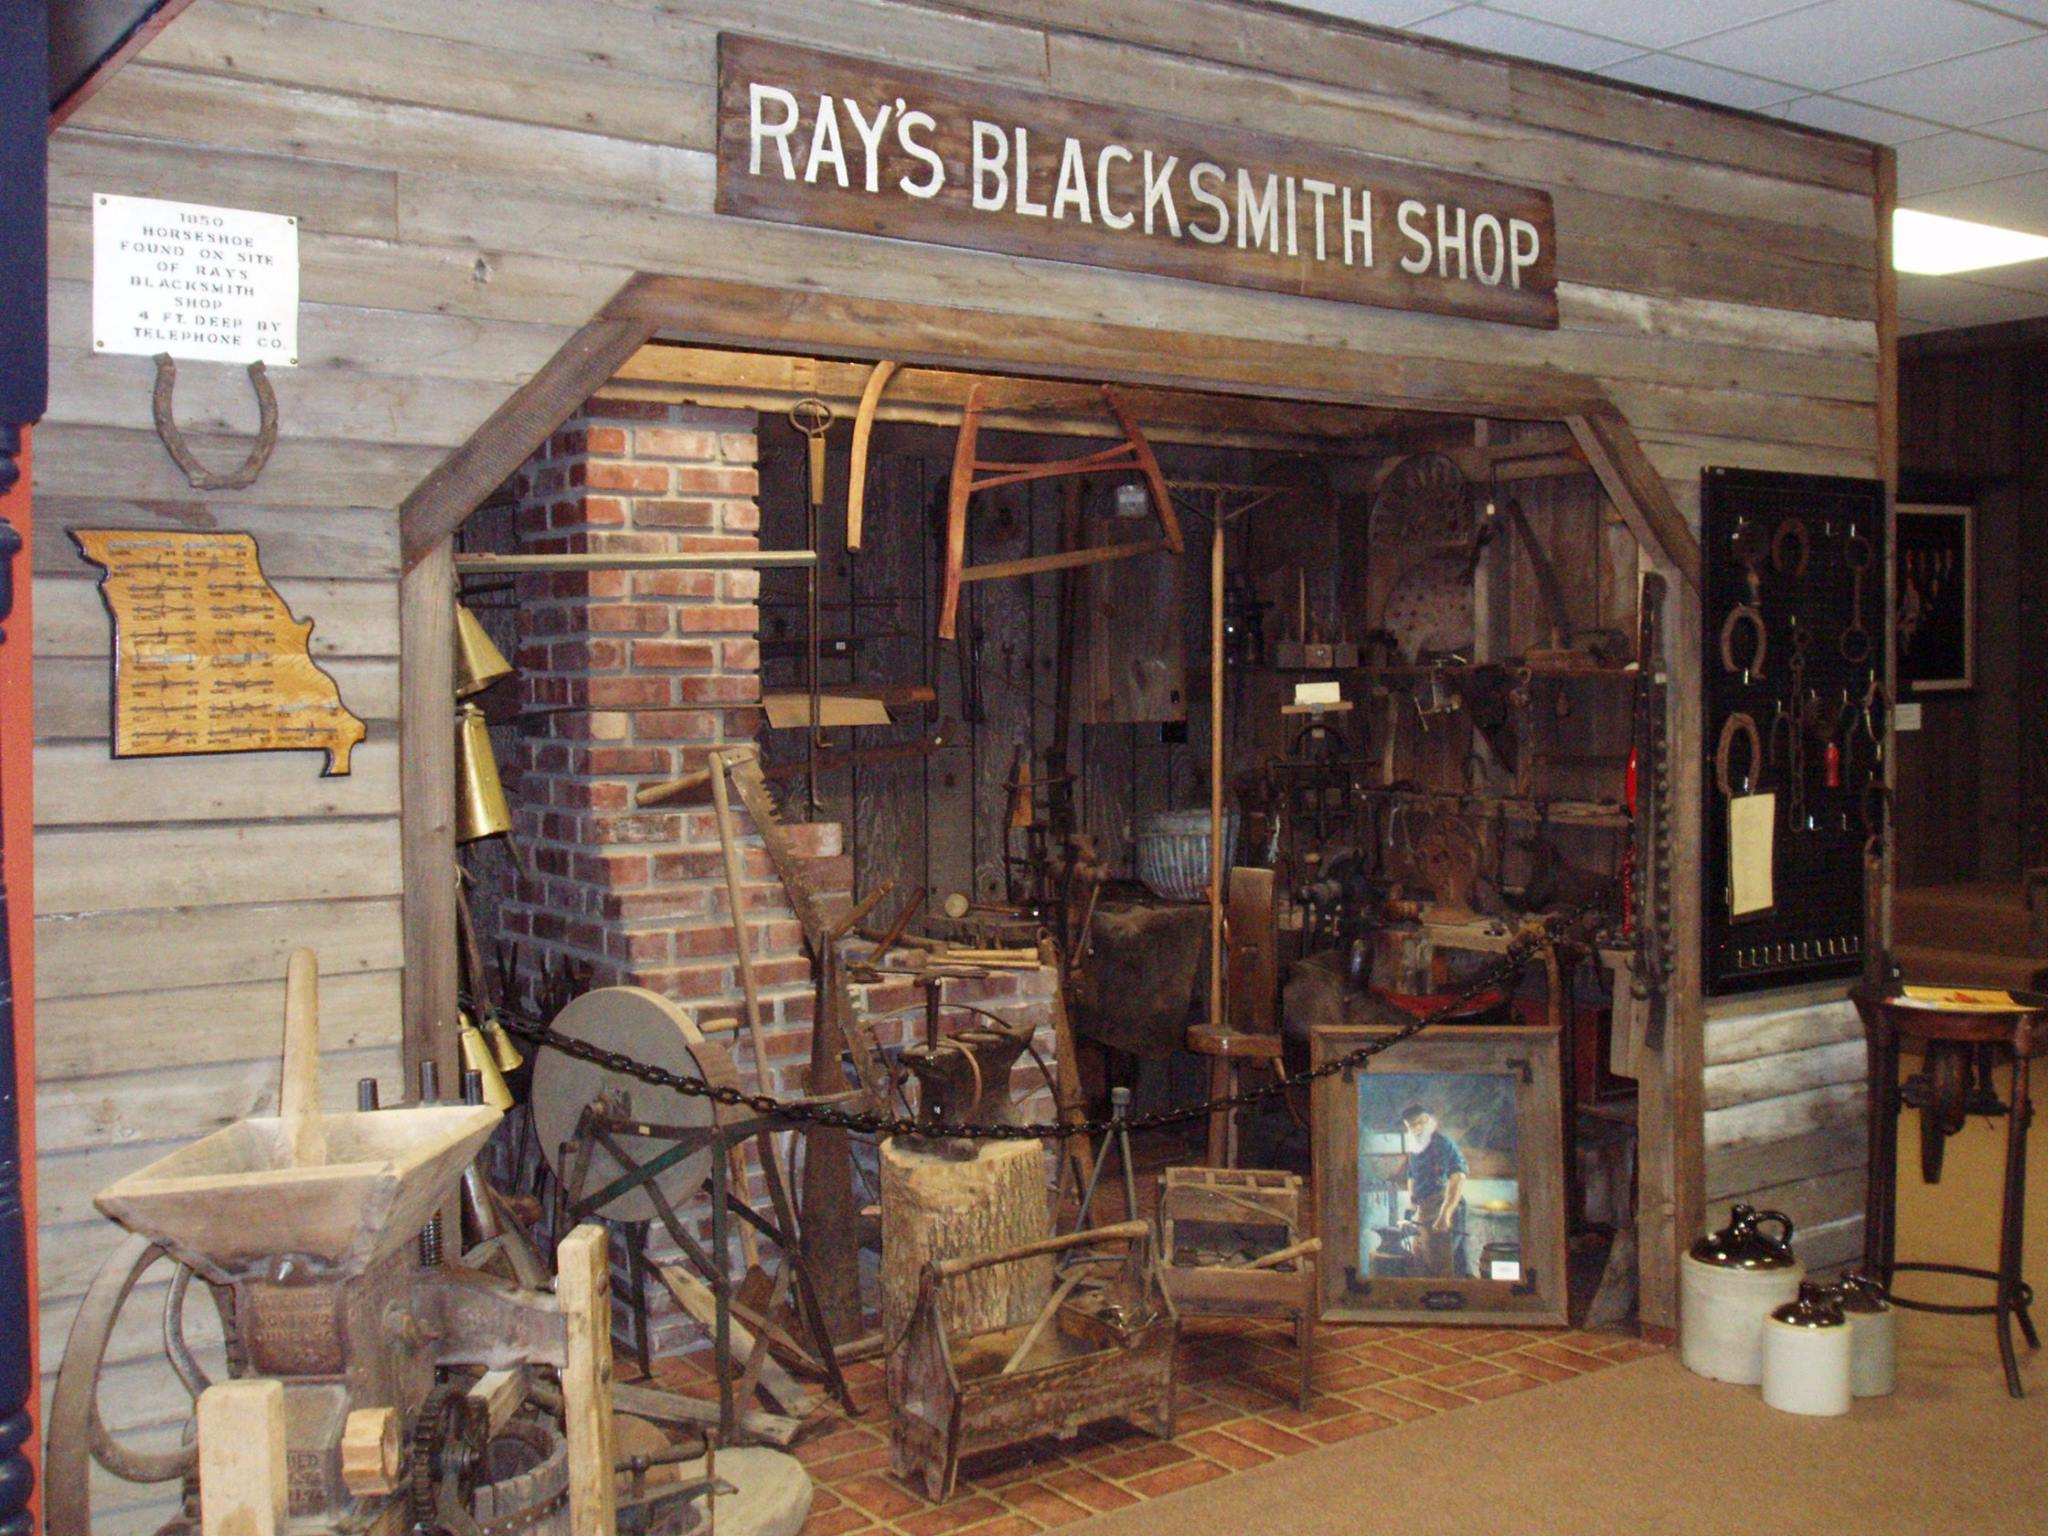 William Ray's Blacksmith Shop display